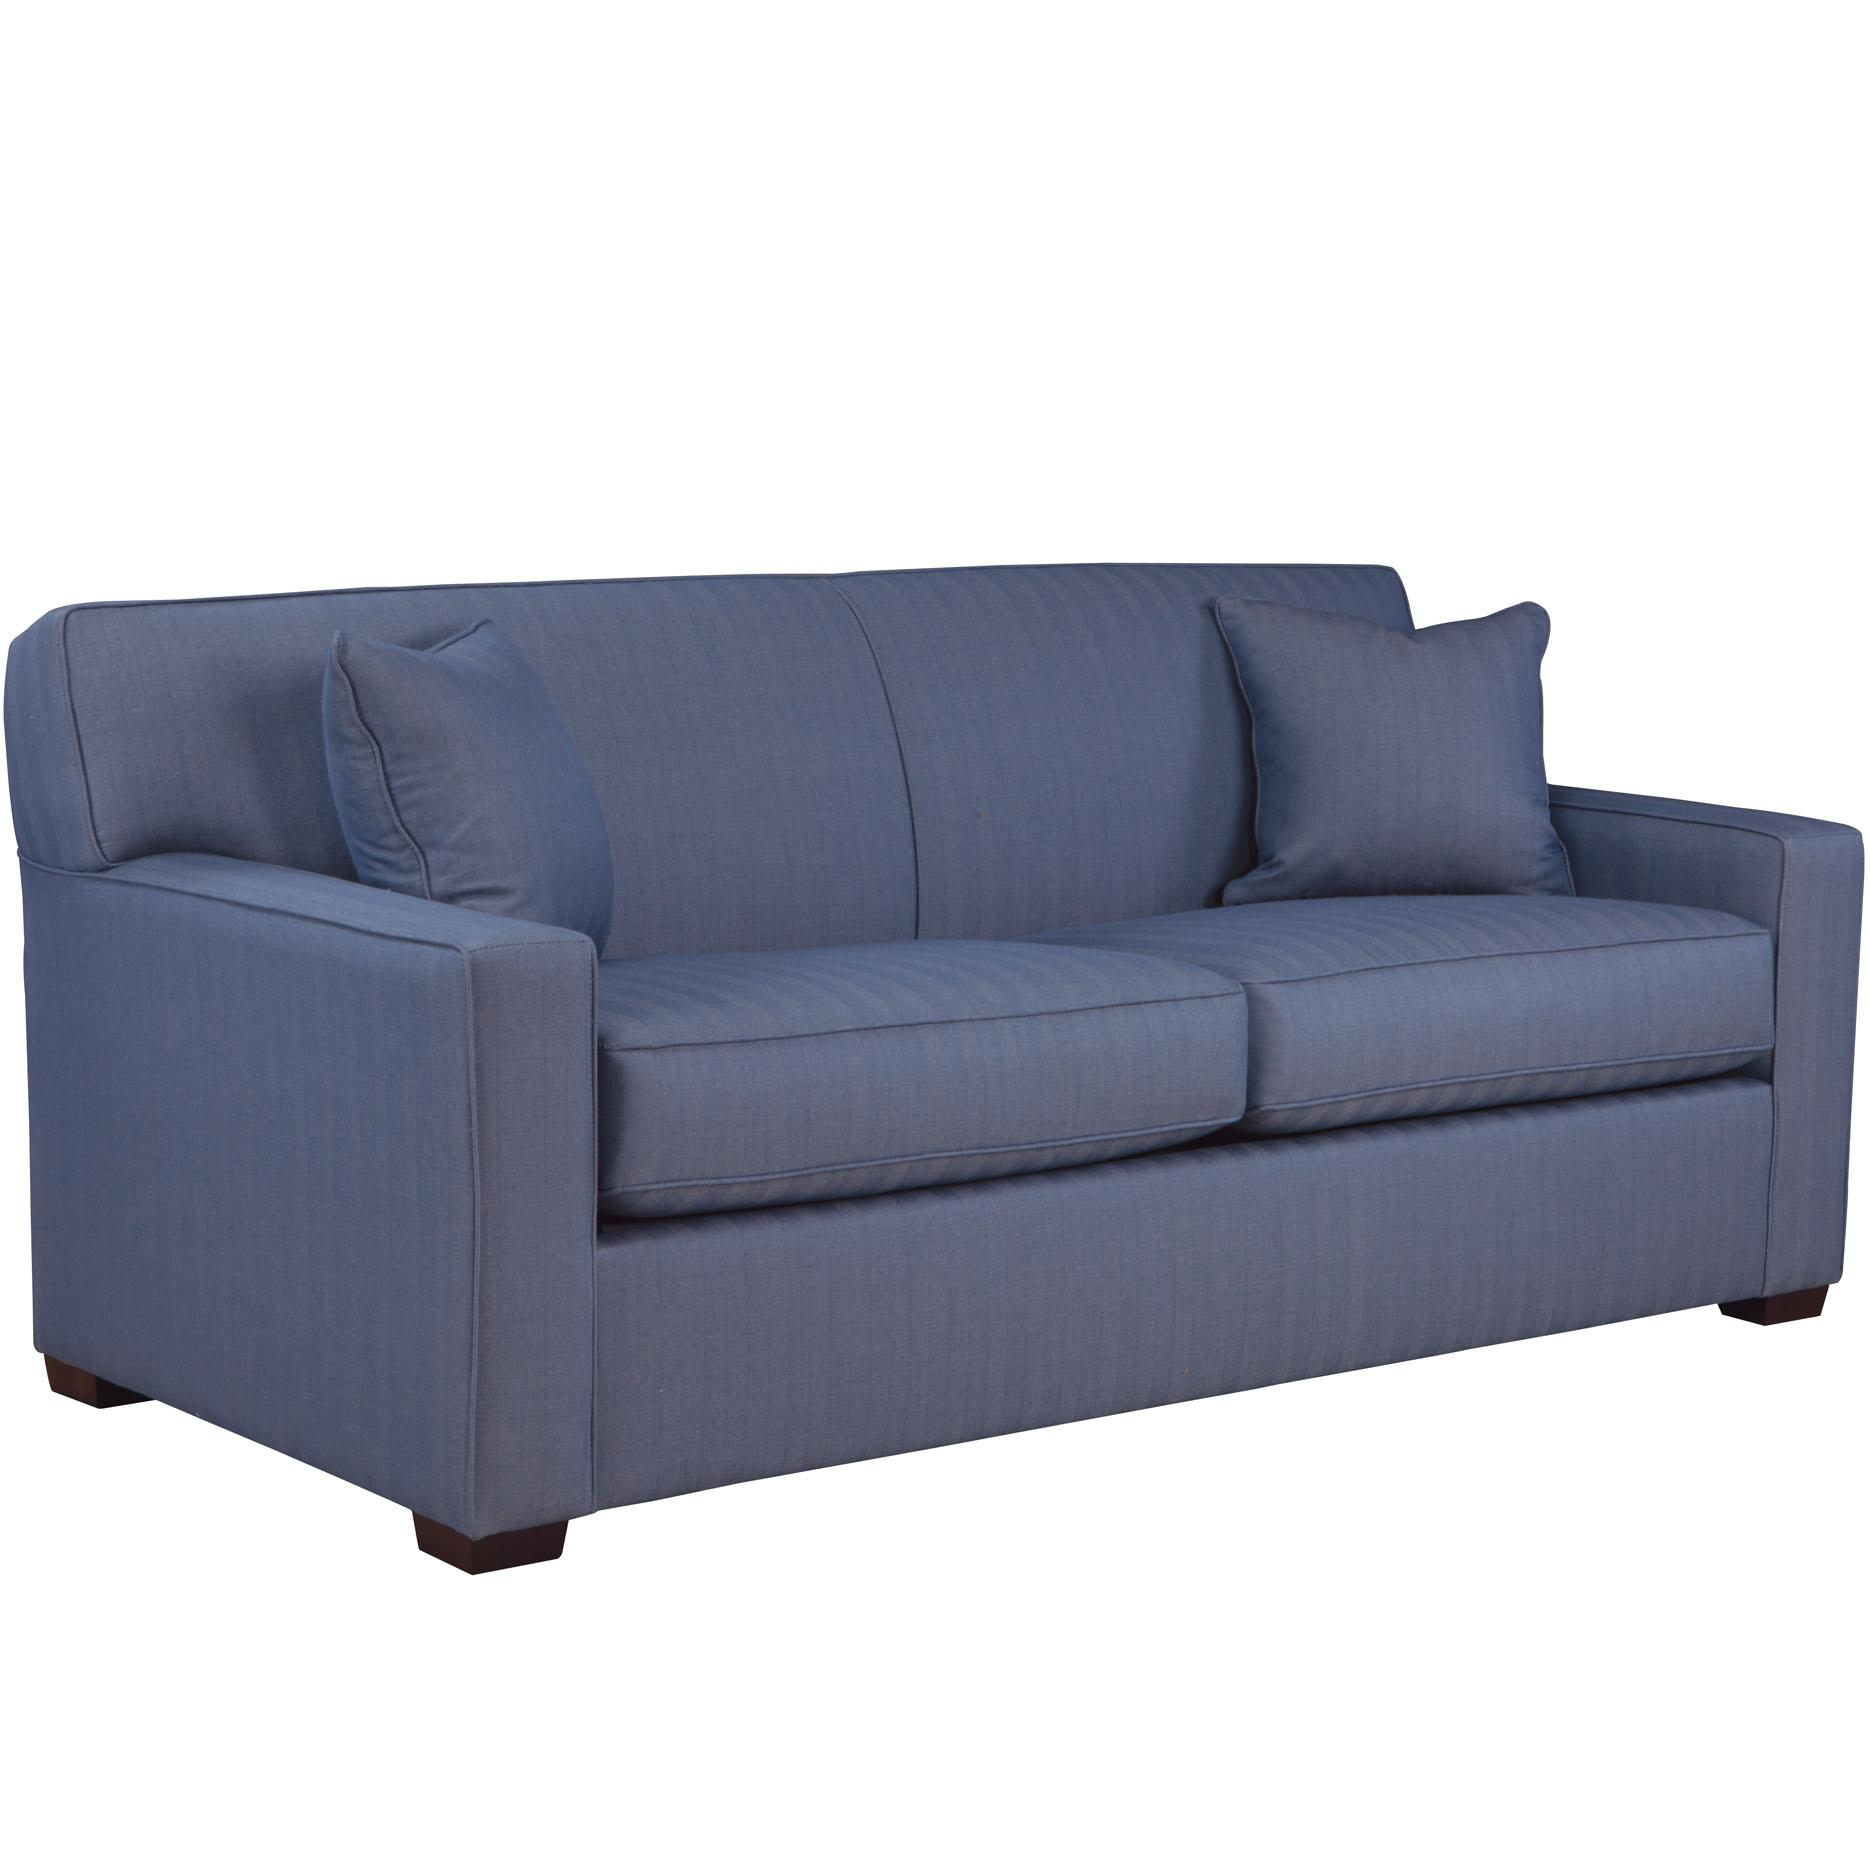 59 Frame Twin Sofa Sleeper by Overnight Sofa at SuperStore